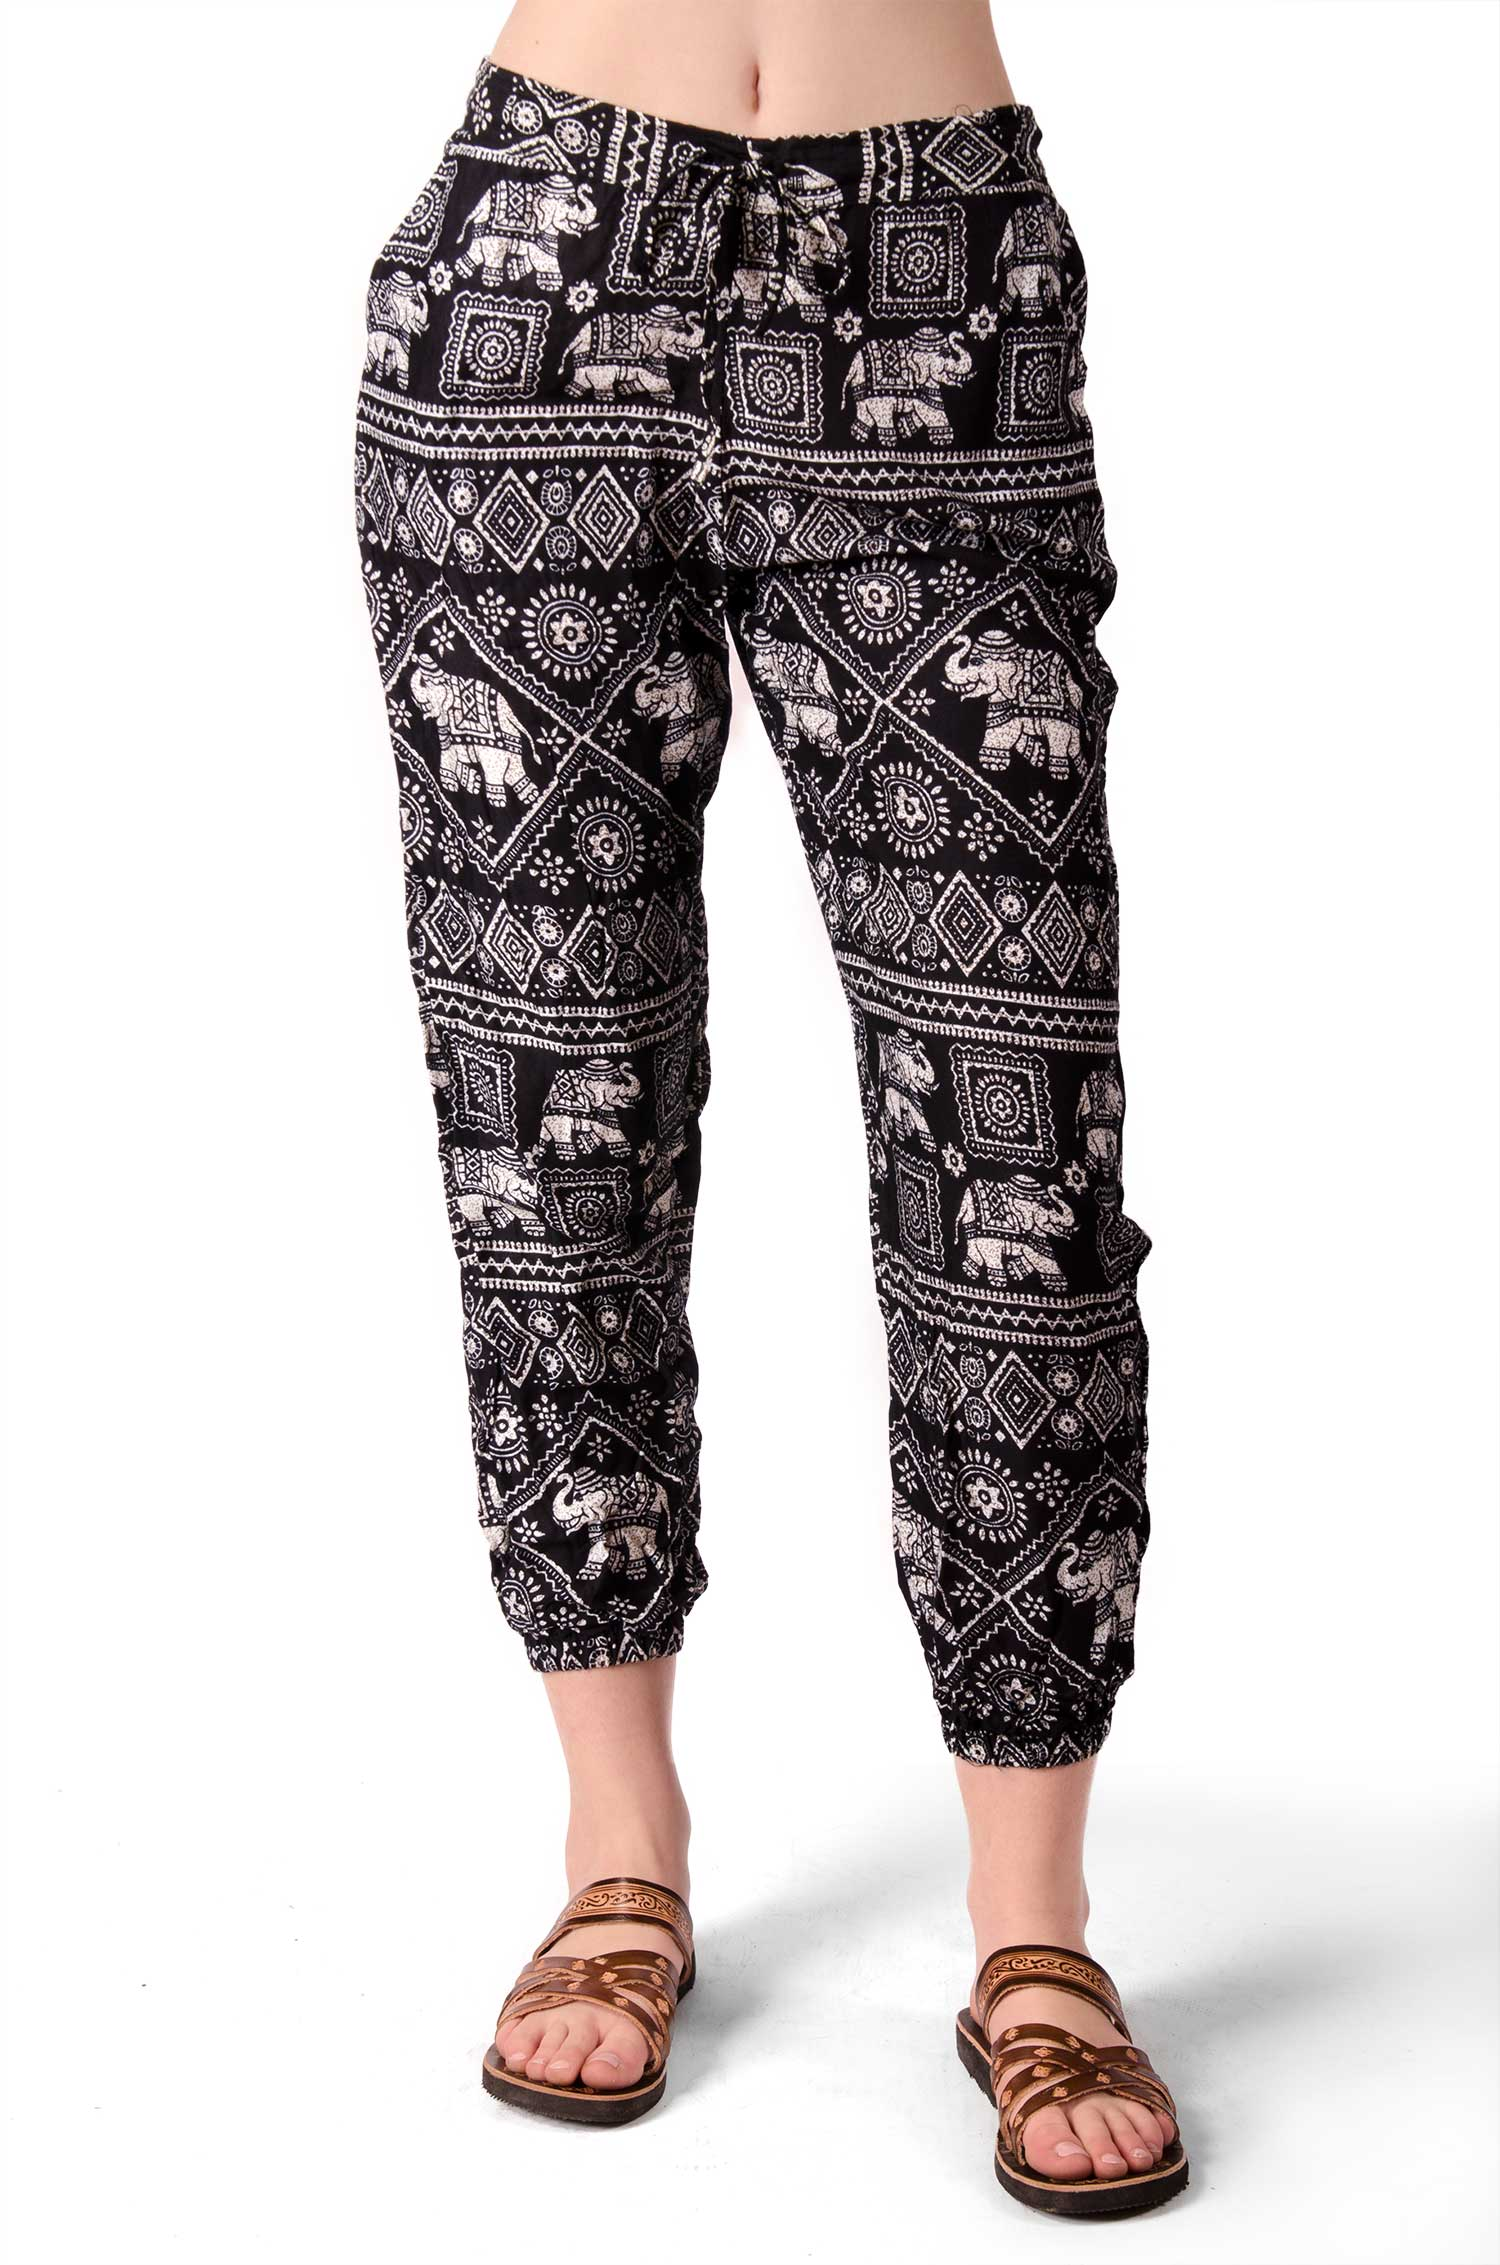 Elephant Print Capri Pants - Black - 4473Y